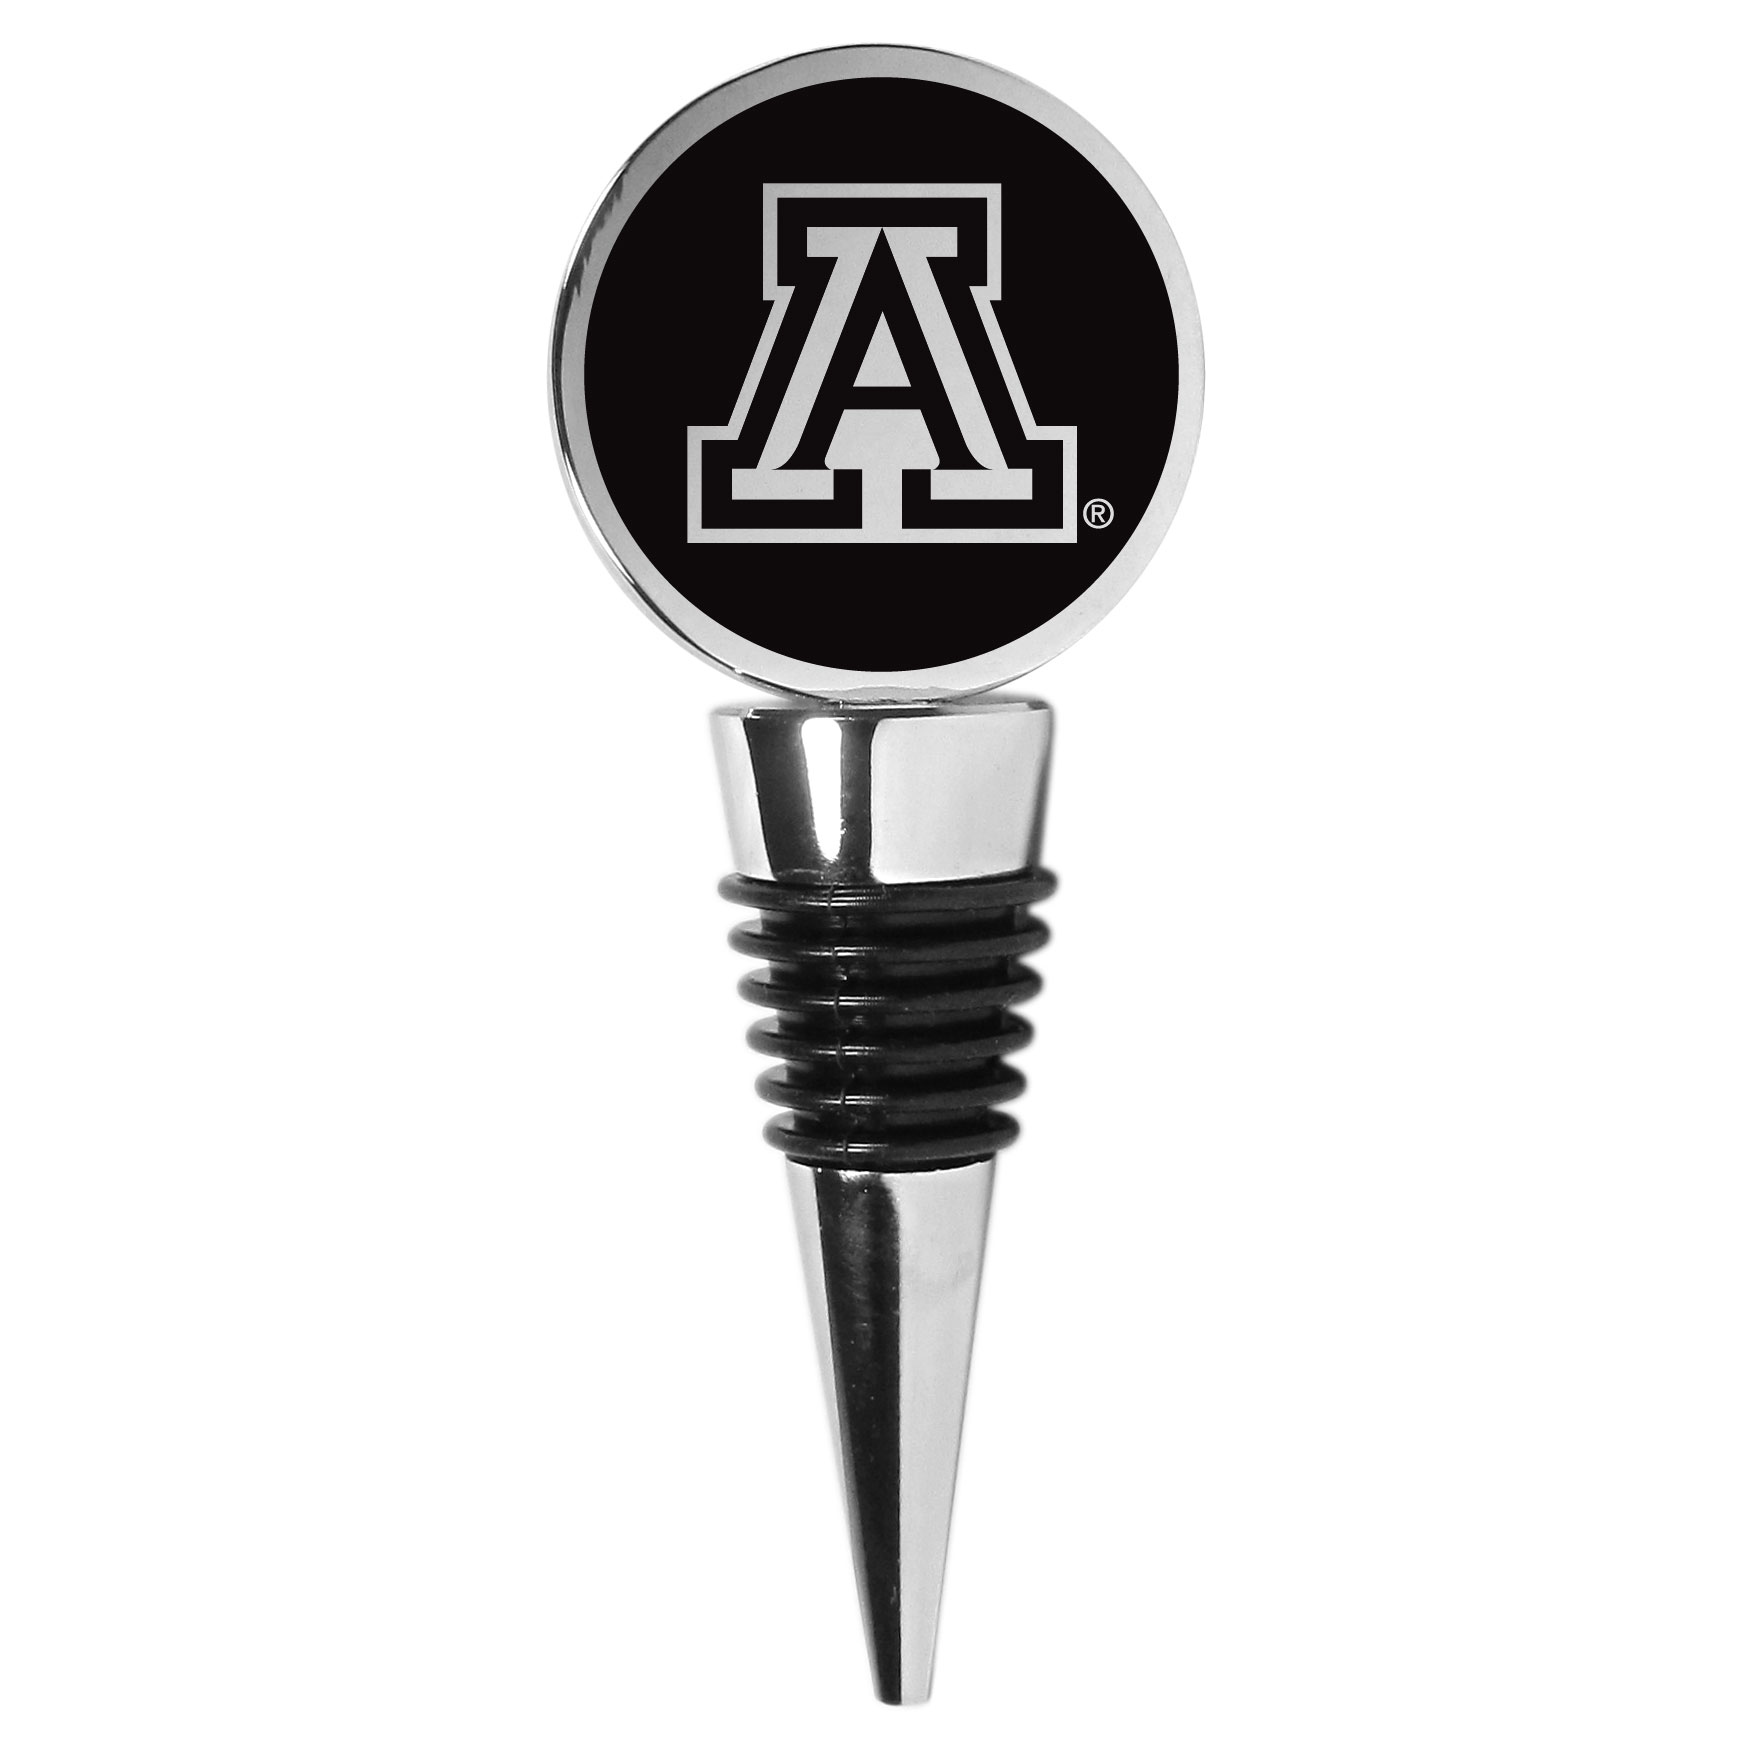 Arizona Wildcats Wine Stopper - This beautiful Arizona Wildcats wine stopper has a classy monochromatic logo on the top disc. The tapered rubber rings allow you to create a tight seal on multiple sizes of wine bottles so that you are able to preserve the wine for later enjoyment. This a perfect addition to a game day celebration.